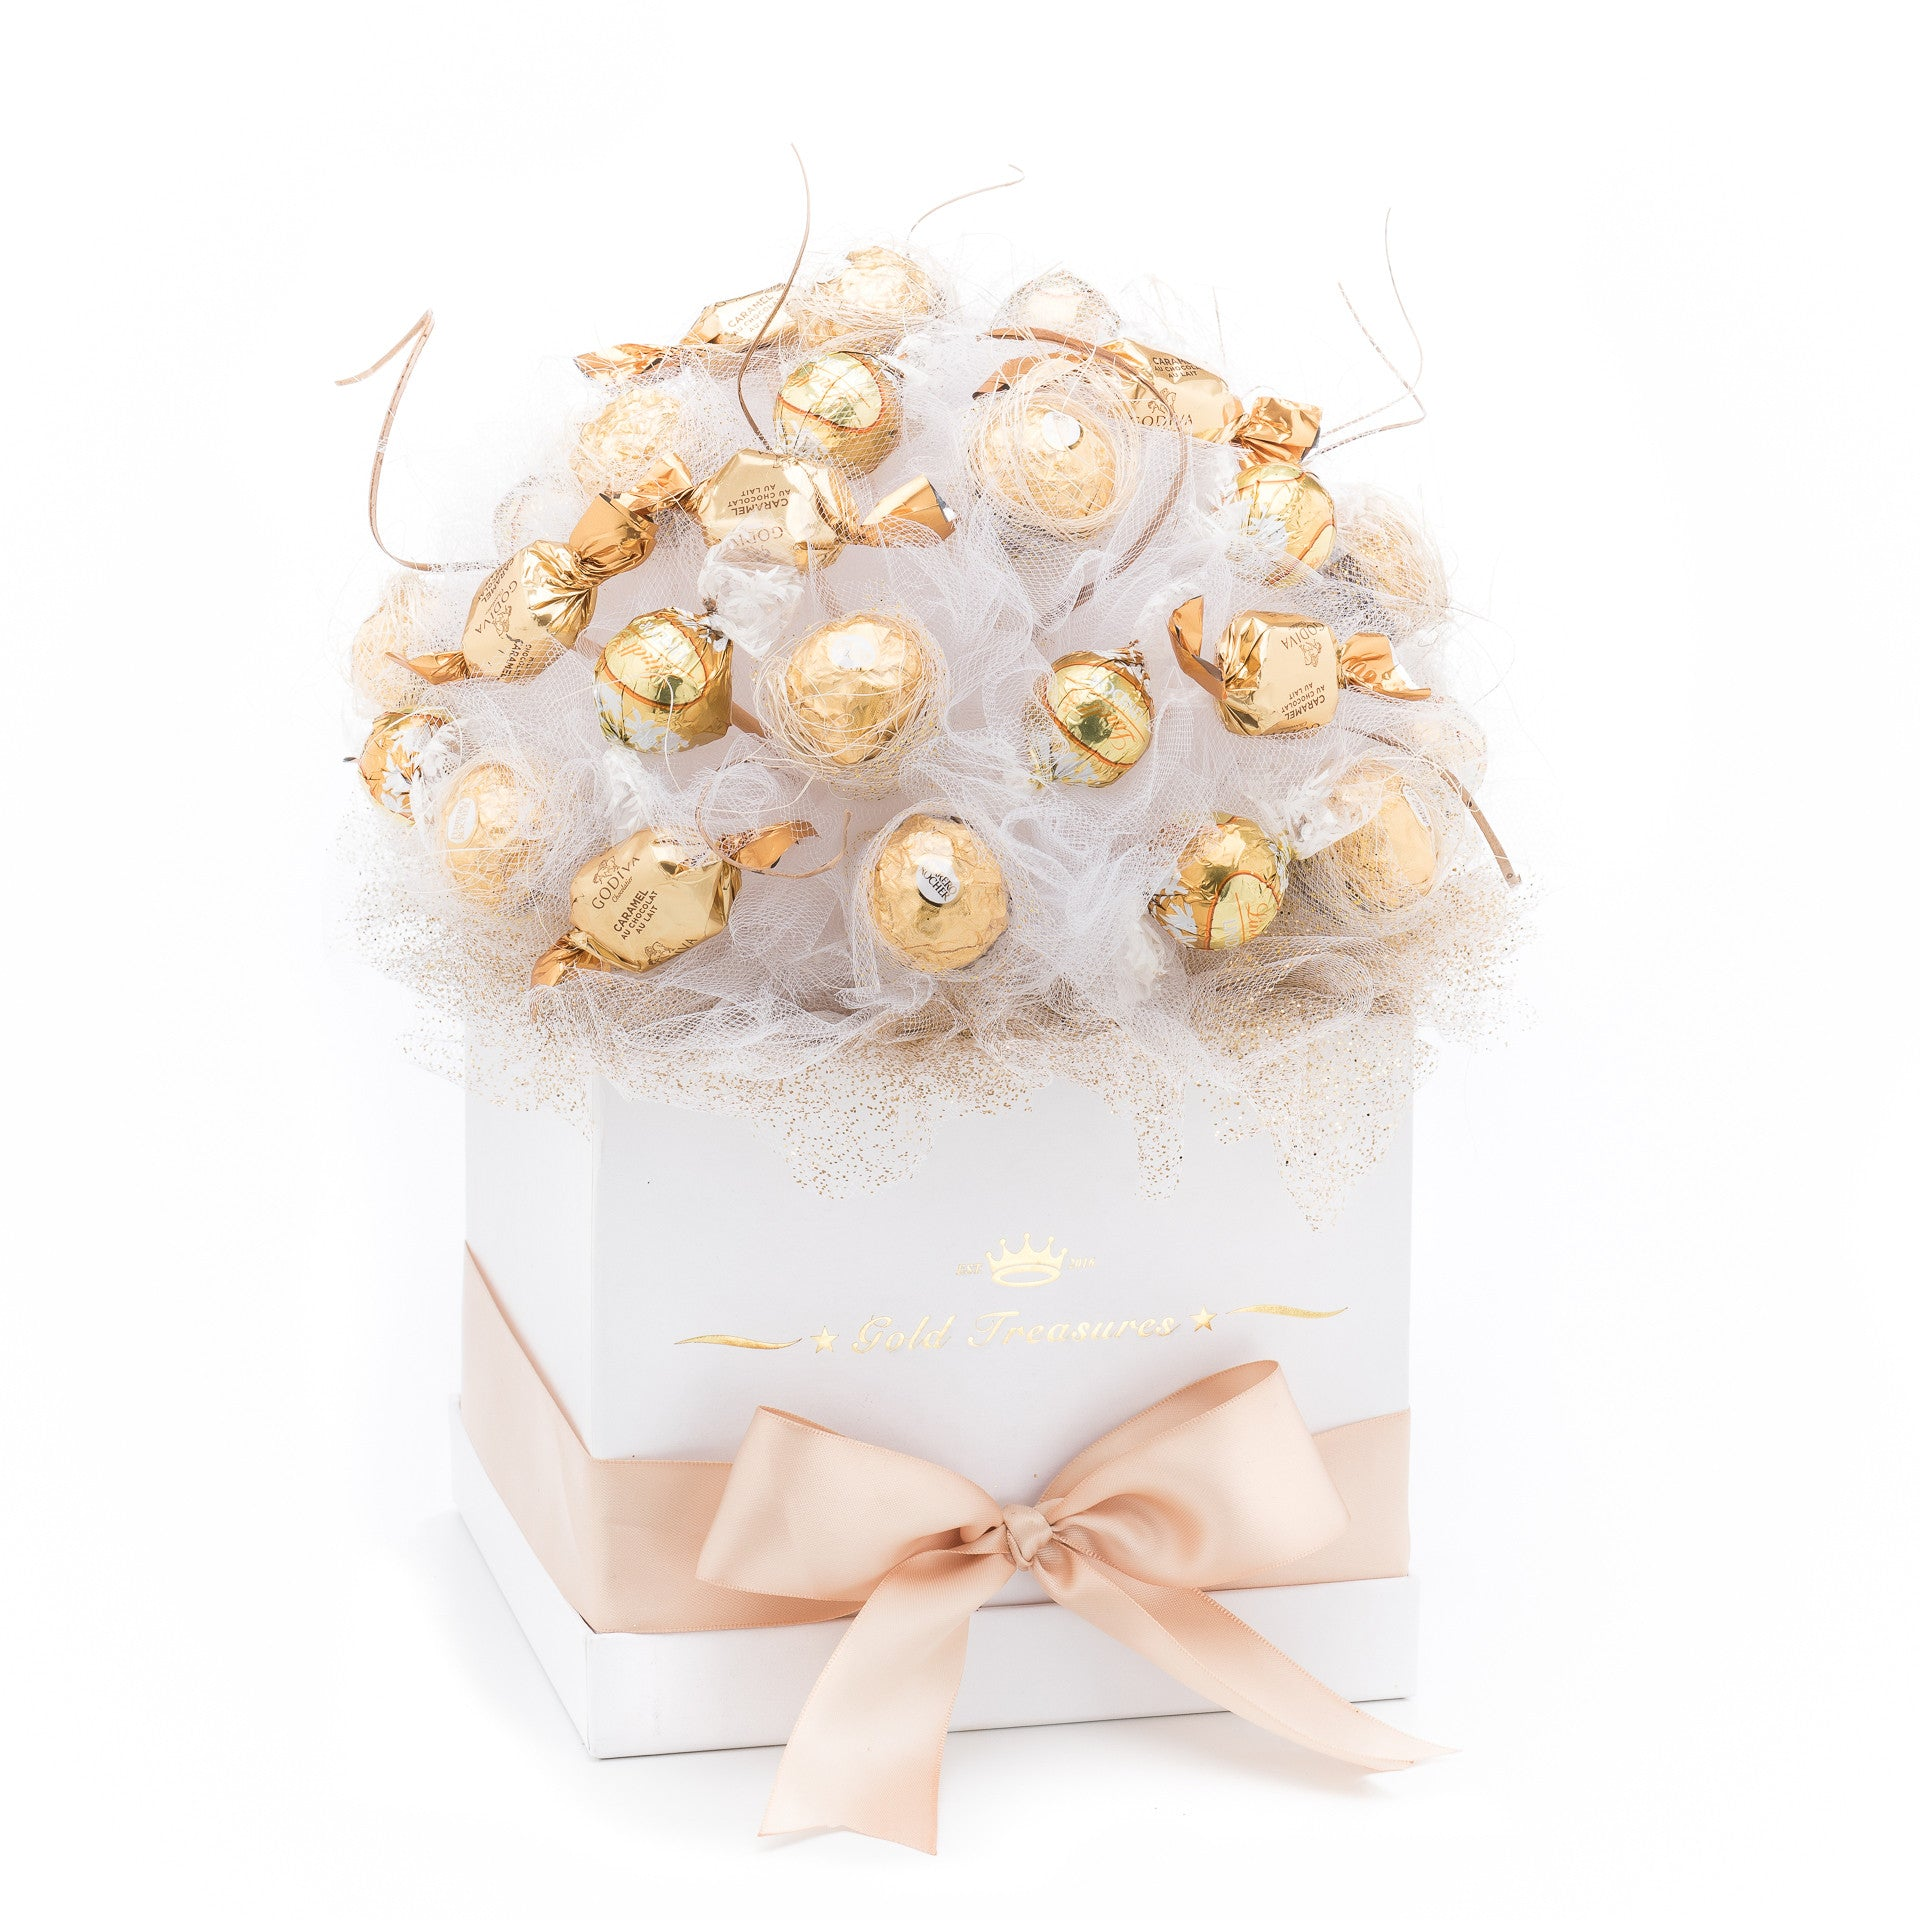 Bright Deluxe Ferrero Rocher, Lindt & Godiva Chocolate Bouquet ...